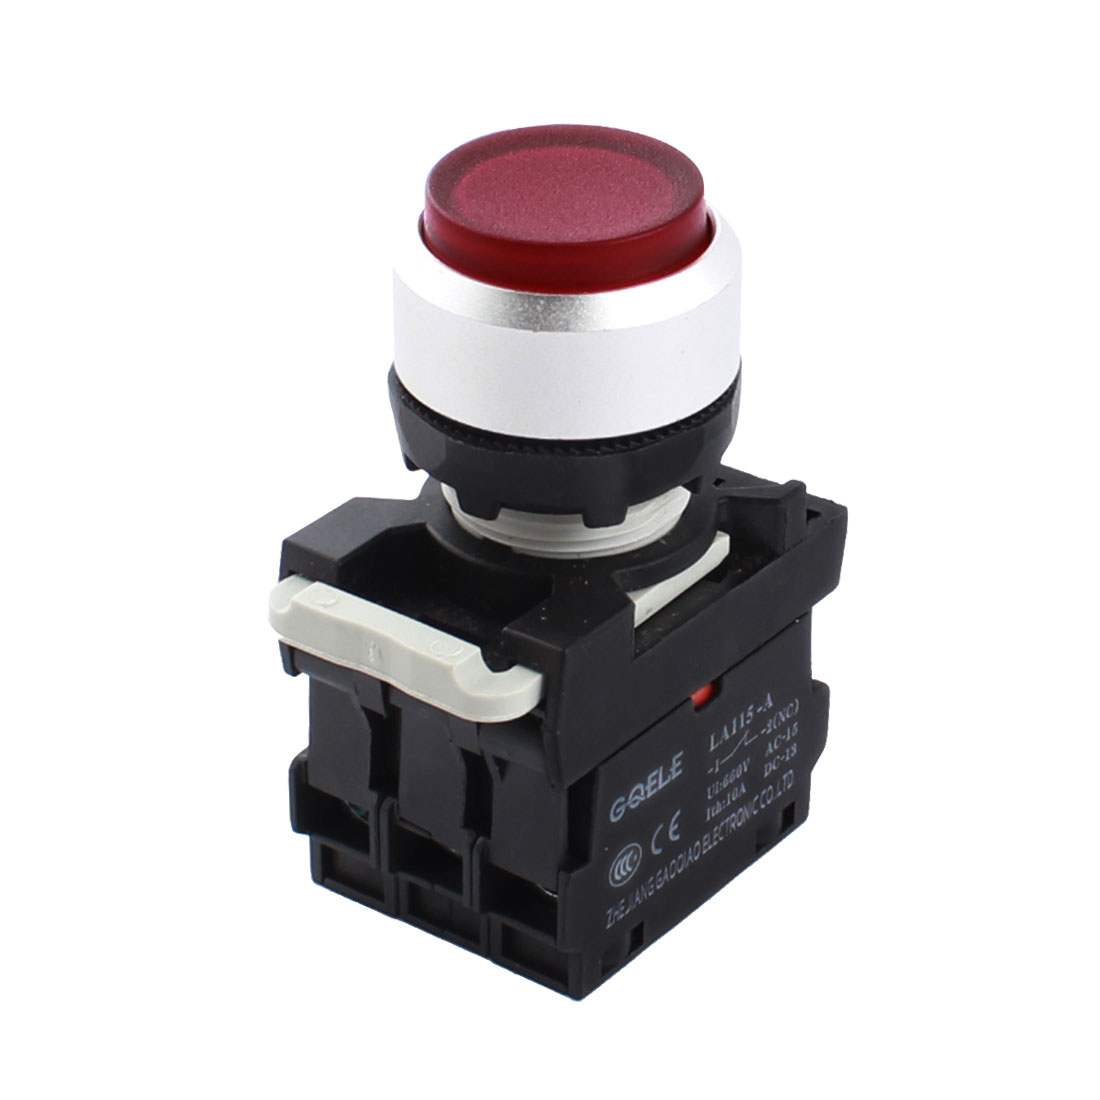 AC220V 22mm Thread Panel Mount DPST 1NO 1NC 6 Screw Terminal Momentary Control Red Lamp Plastic Pushbutton Switch